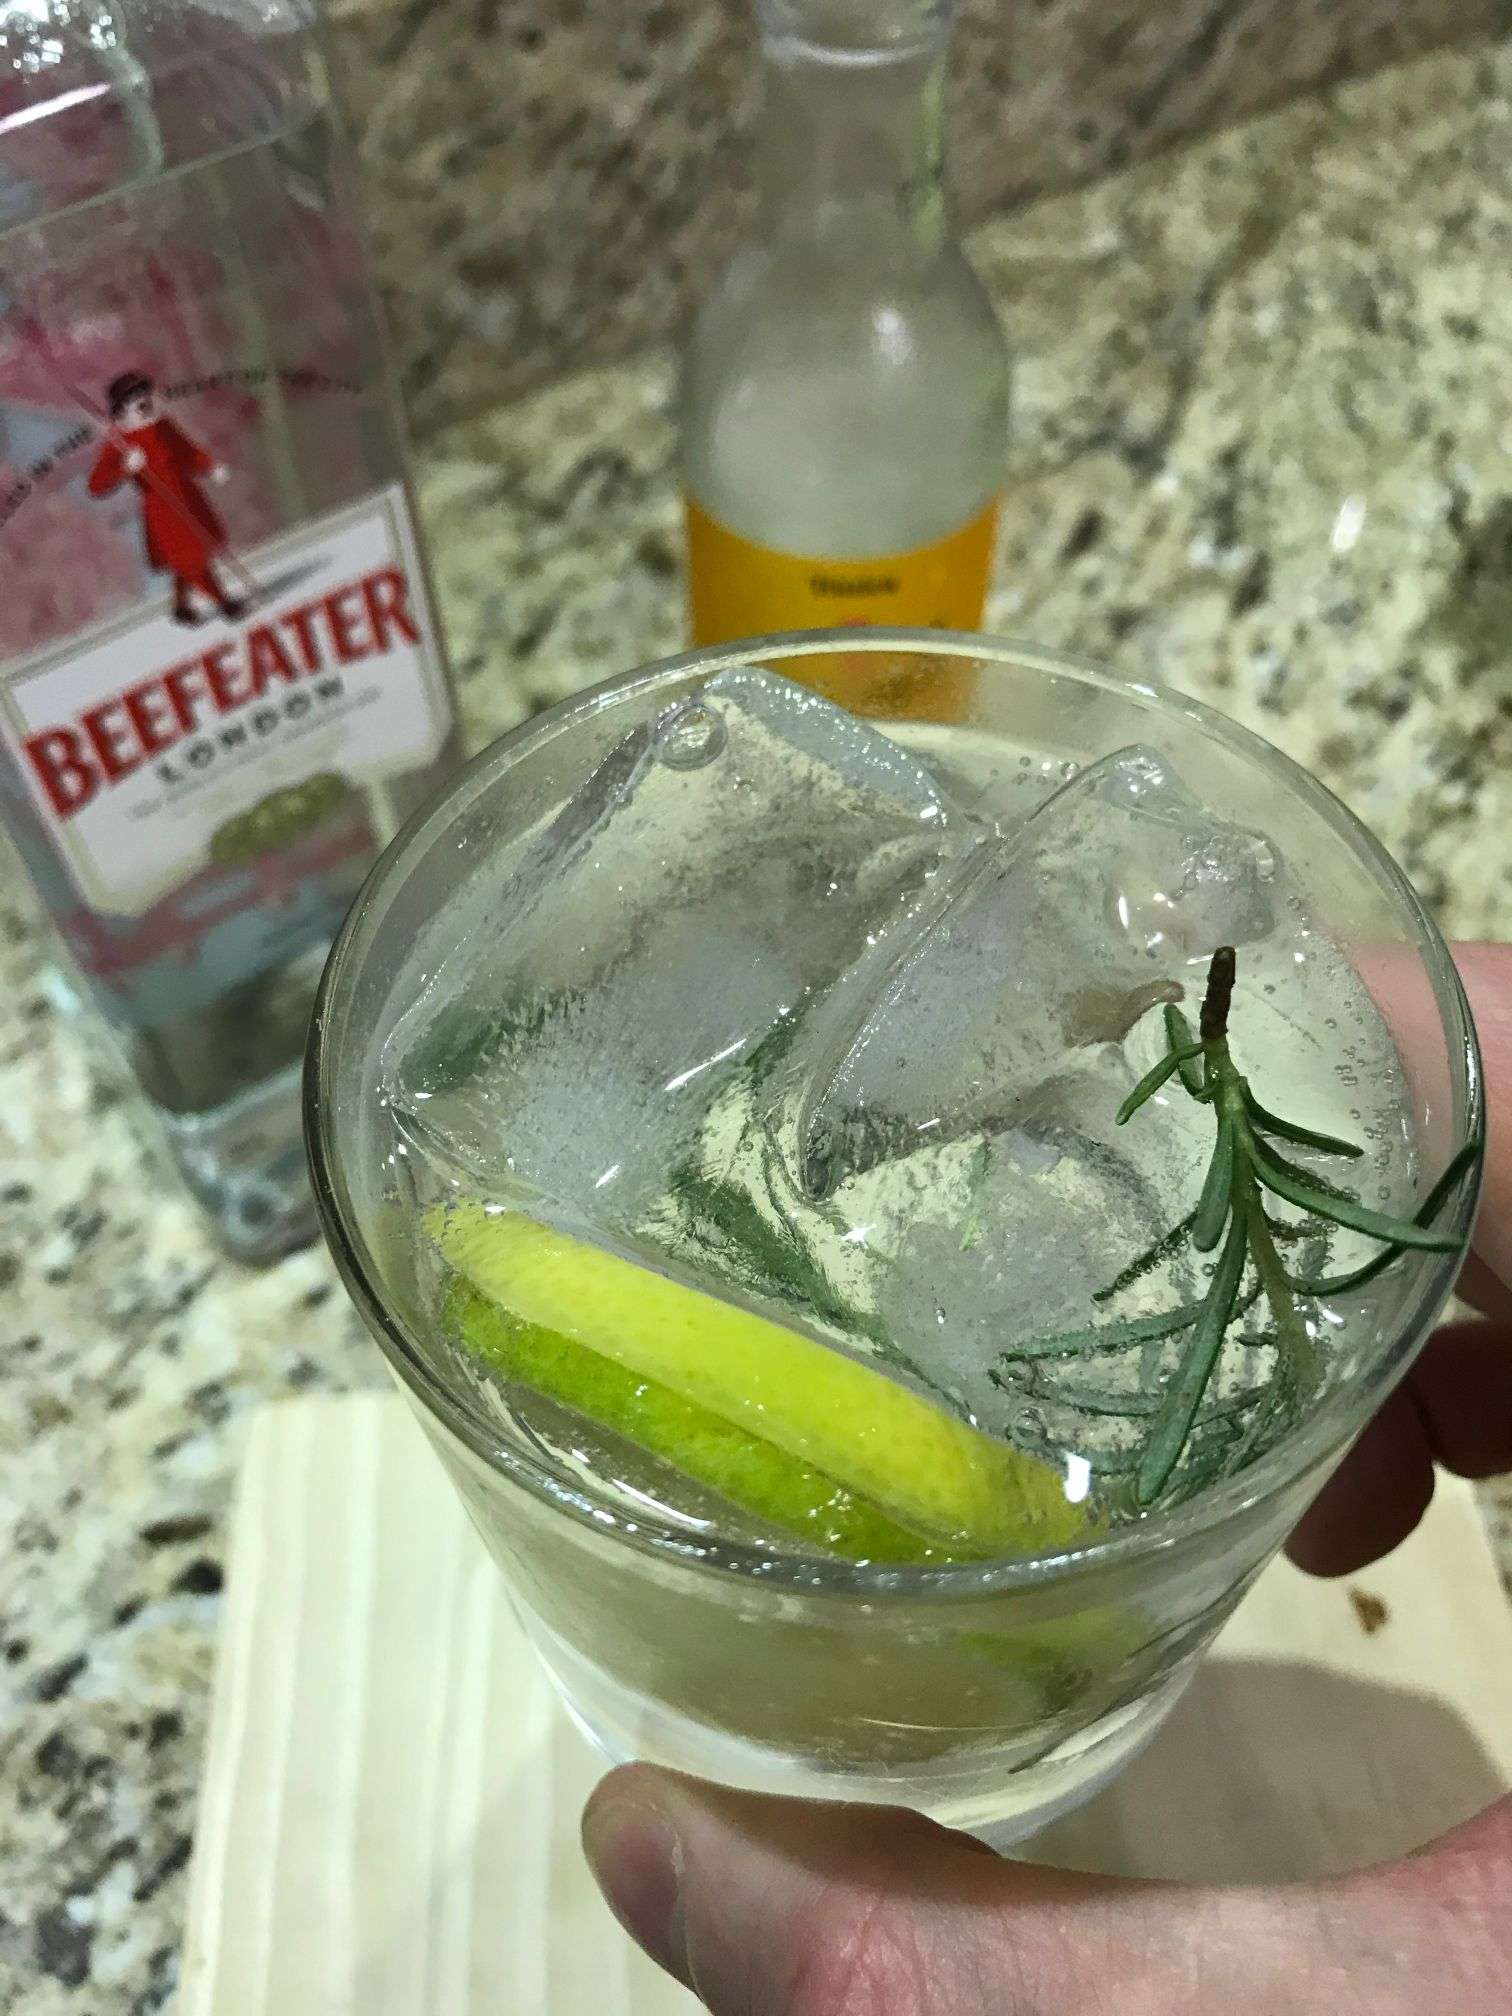 Beefeater Fresh